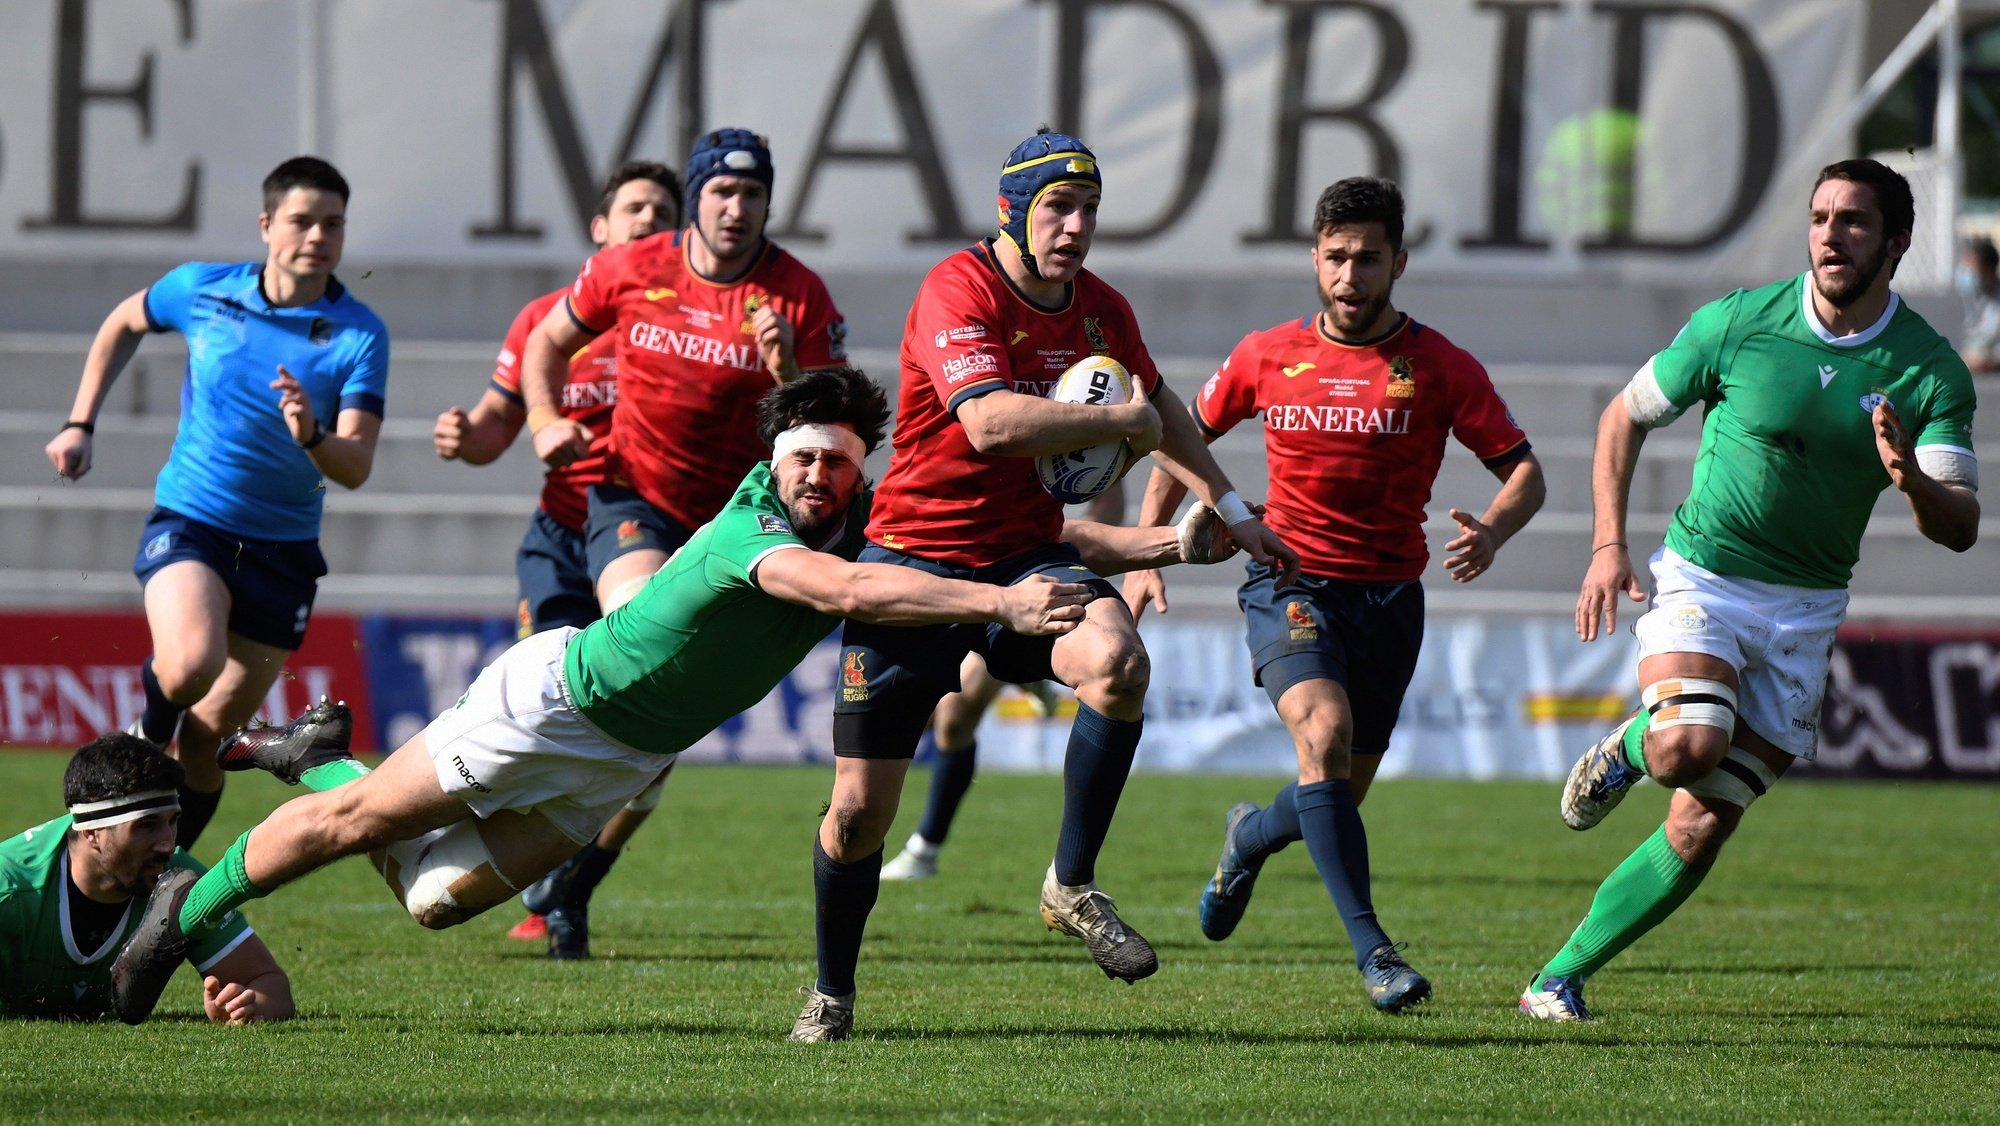 epa08993583 Spanish player Alvaro Gimeno (C) is tackled by Portugal's Jose Vareta (2-L) during a Rugby Europe Championship 2020 match between Spain and Portugal at Central de la Complutense stadium, in Madrid, Spain, 07 February 2021.  EPA/VICTOR LERENA